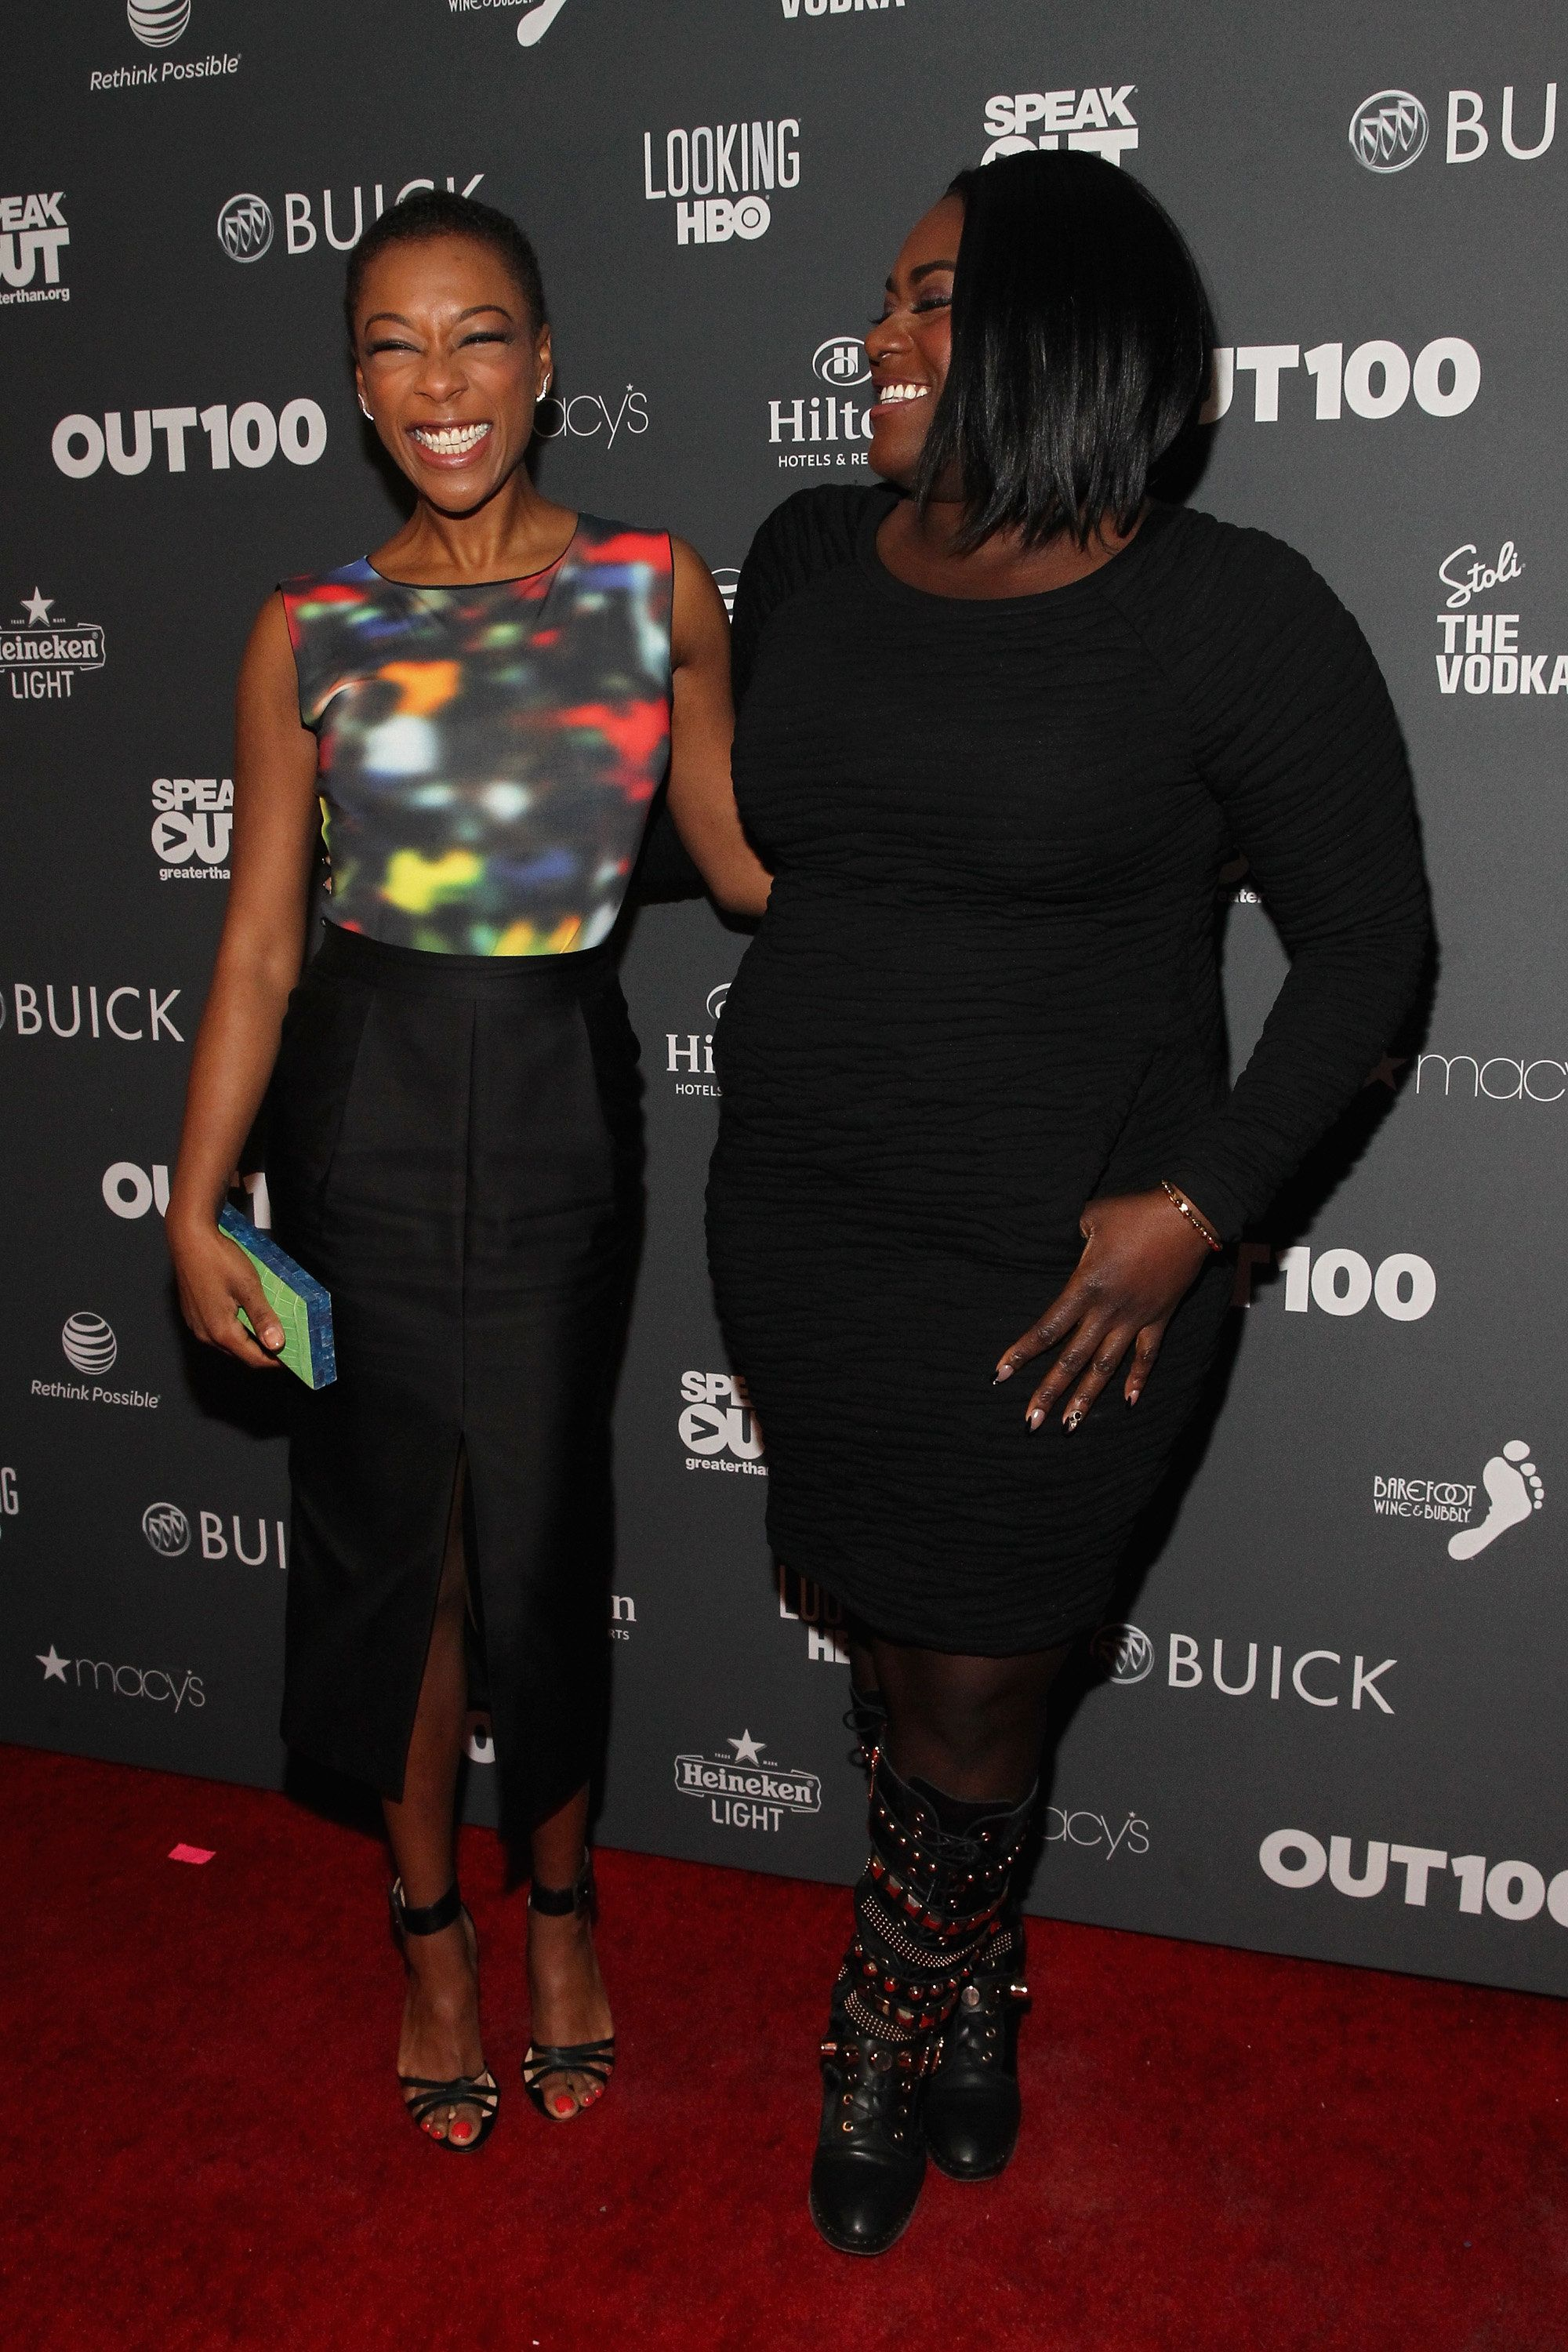 NEW YORK, NY - NOVEMBER 20:  Samira Wiley and Danielle Brooks attend Out100 2014 presented by Buick on November 20, 2014 in New York City.  (Photo by Astrid Stawiarz/Getty Images for OUT100)